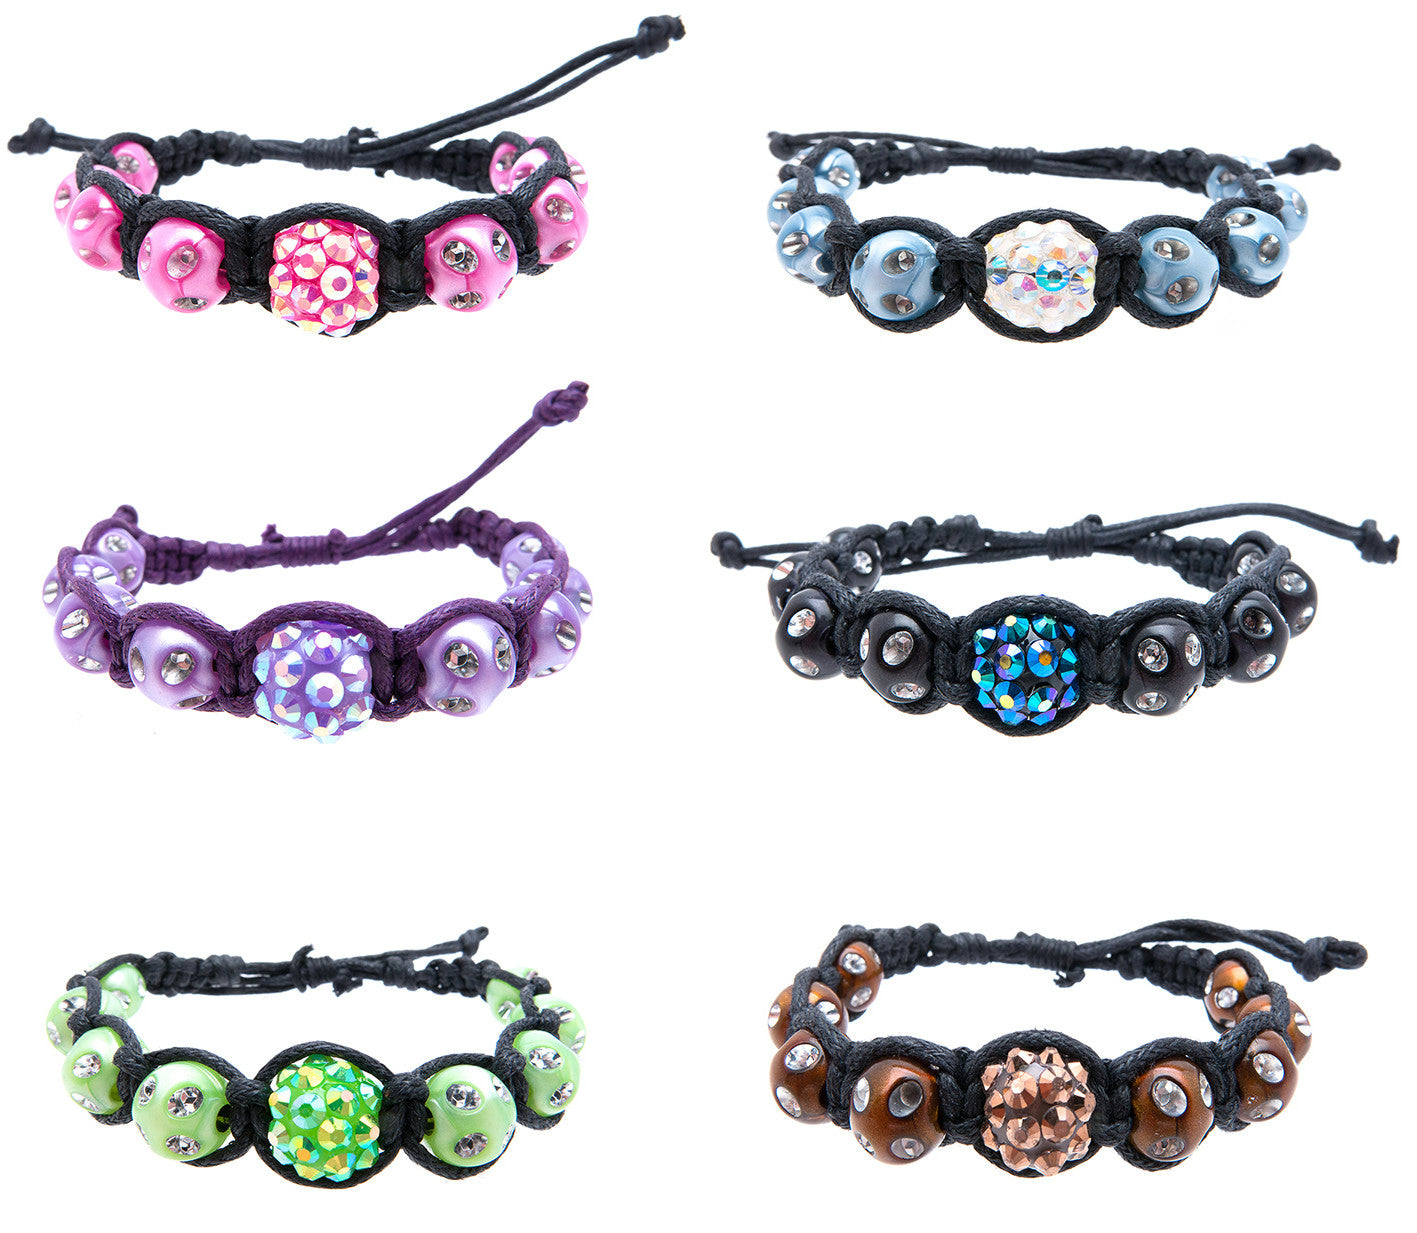 RFB968B Disco Balls & Color/Silver Beads Braid 2mm Cord Bracelets - 6 Pcs Pack Unit